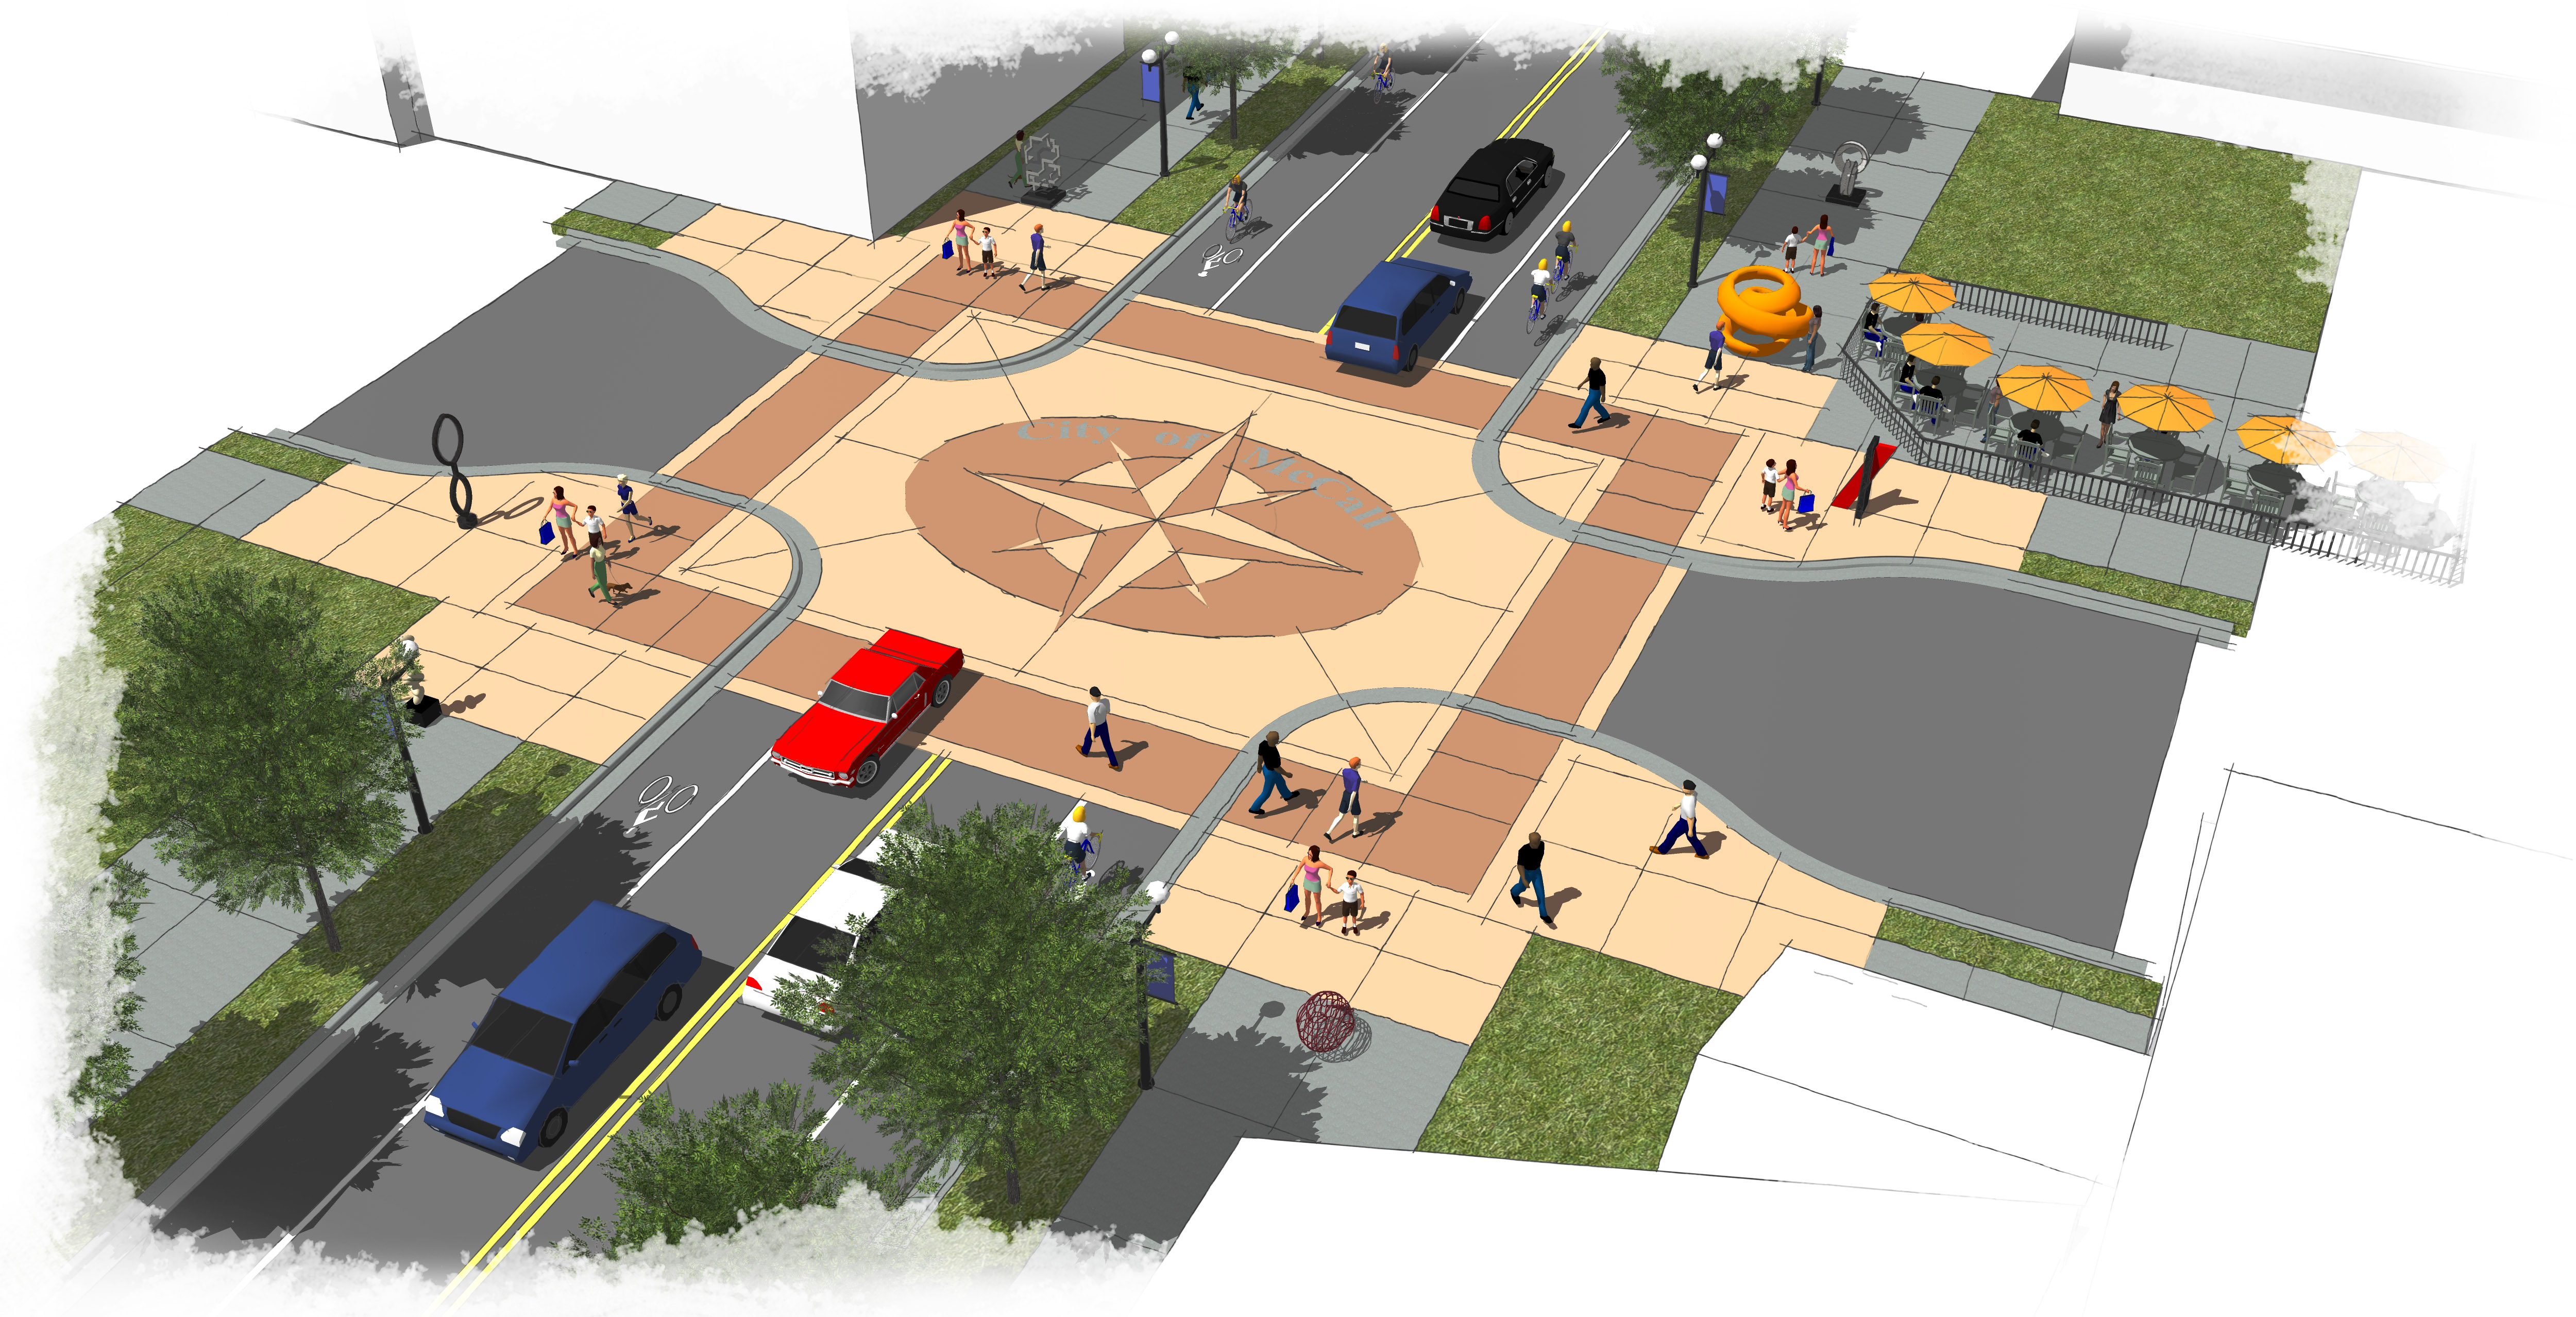 3d model of improved intersection